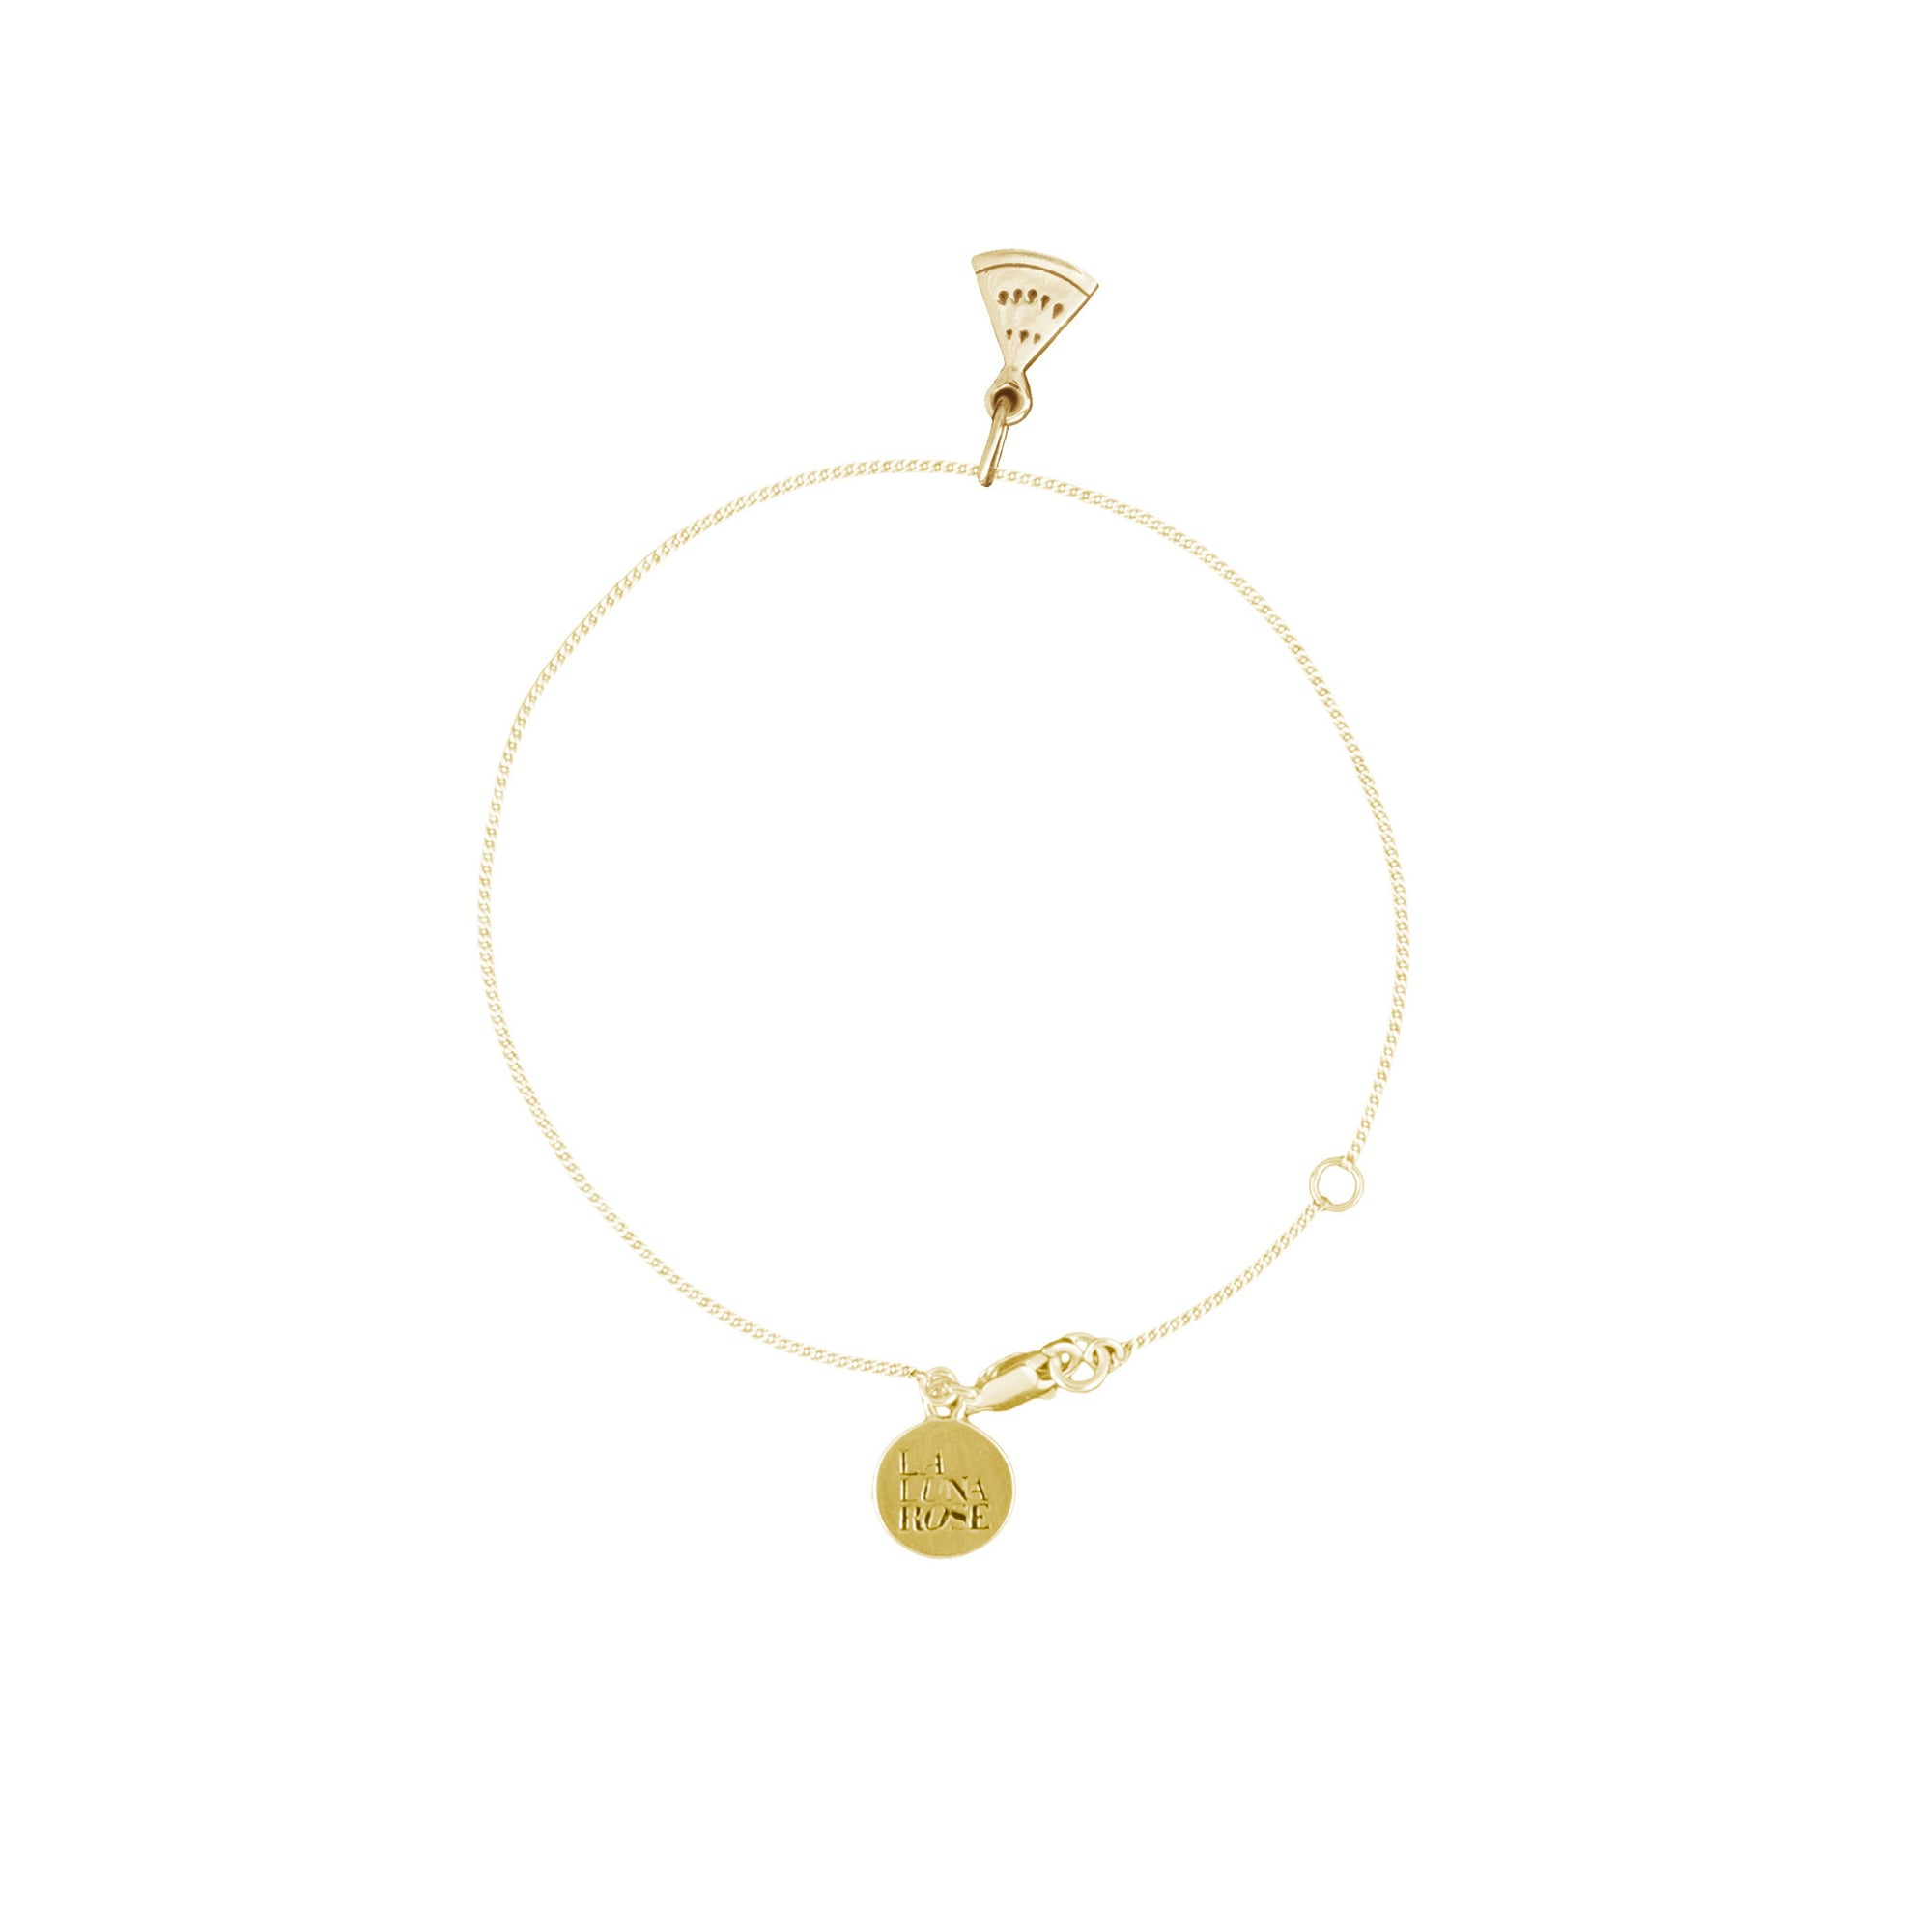 Luna & Rose - Watermelon Charm Bracelet - Gold